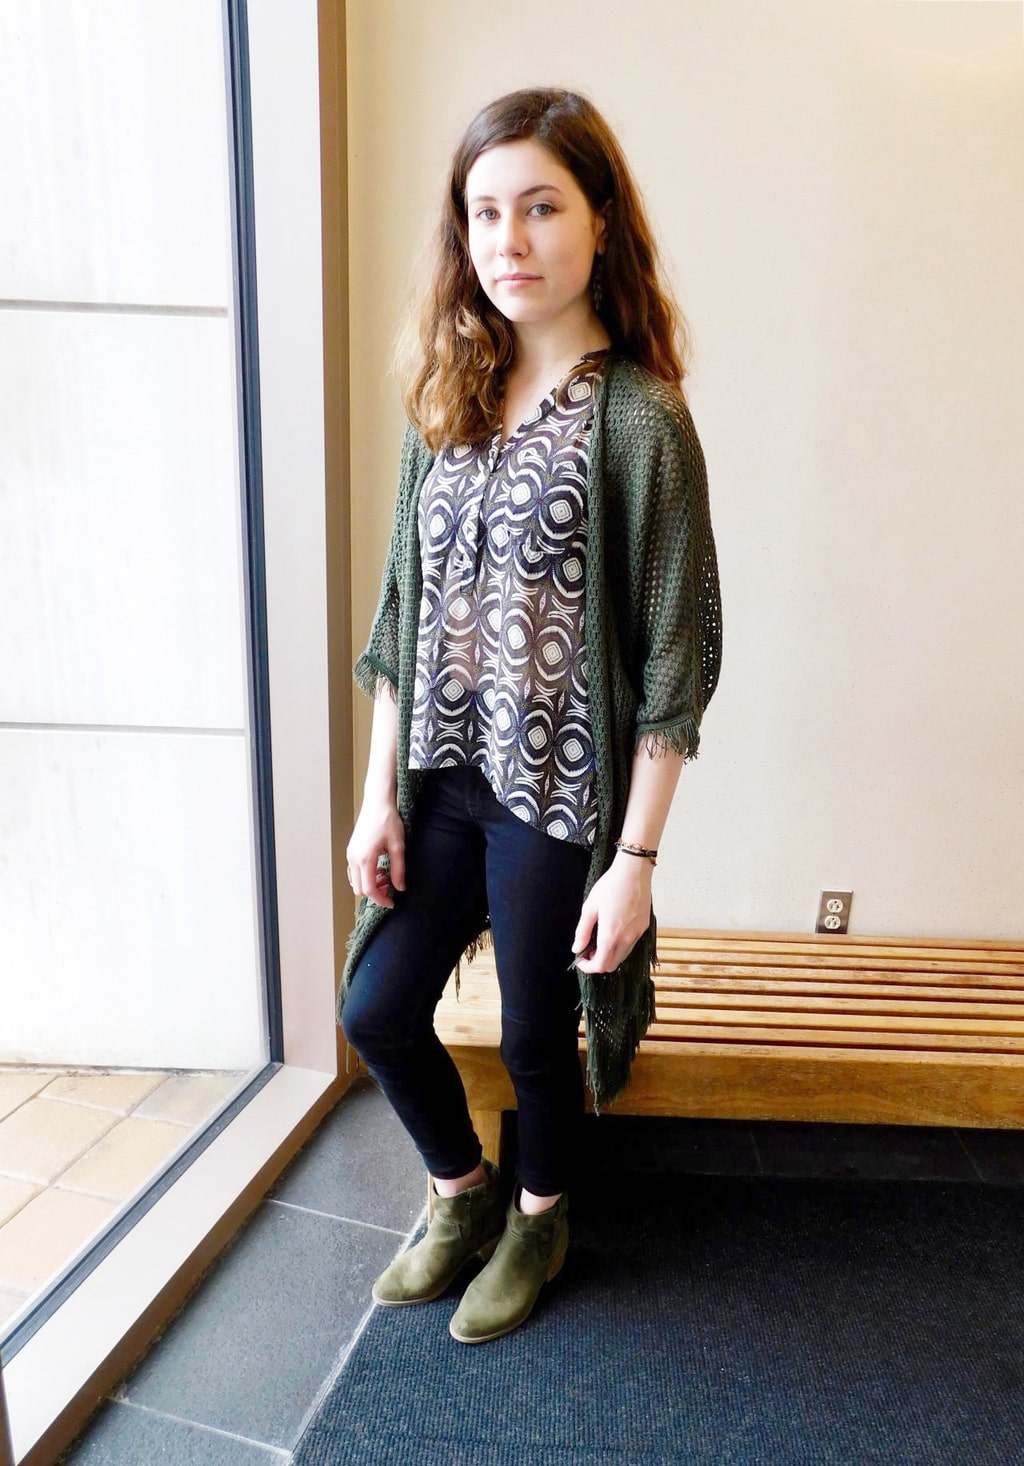 Jefferson University student Jenna sports a silky see-through black button-up blouse with a white pattern, black fitted skinny jeans, and a casual loose-knit olive green cardigan.